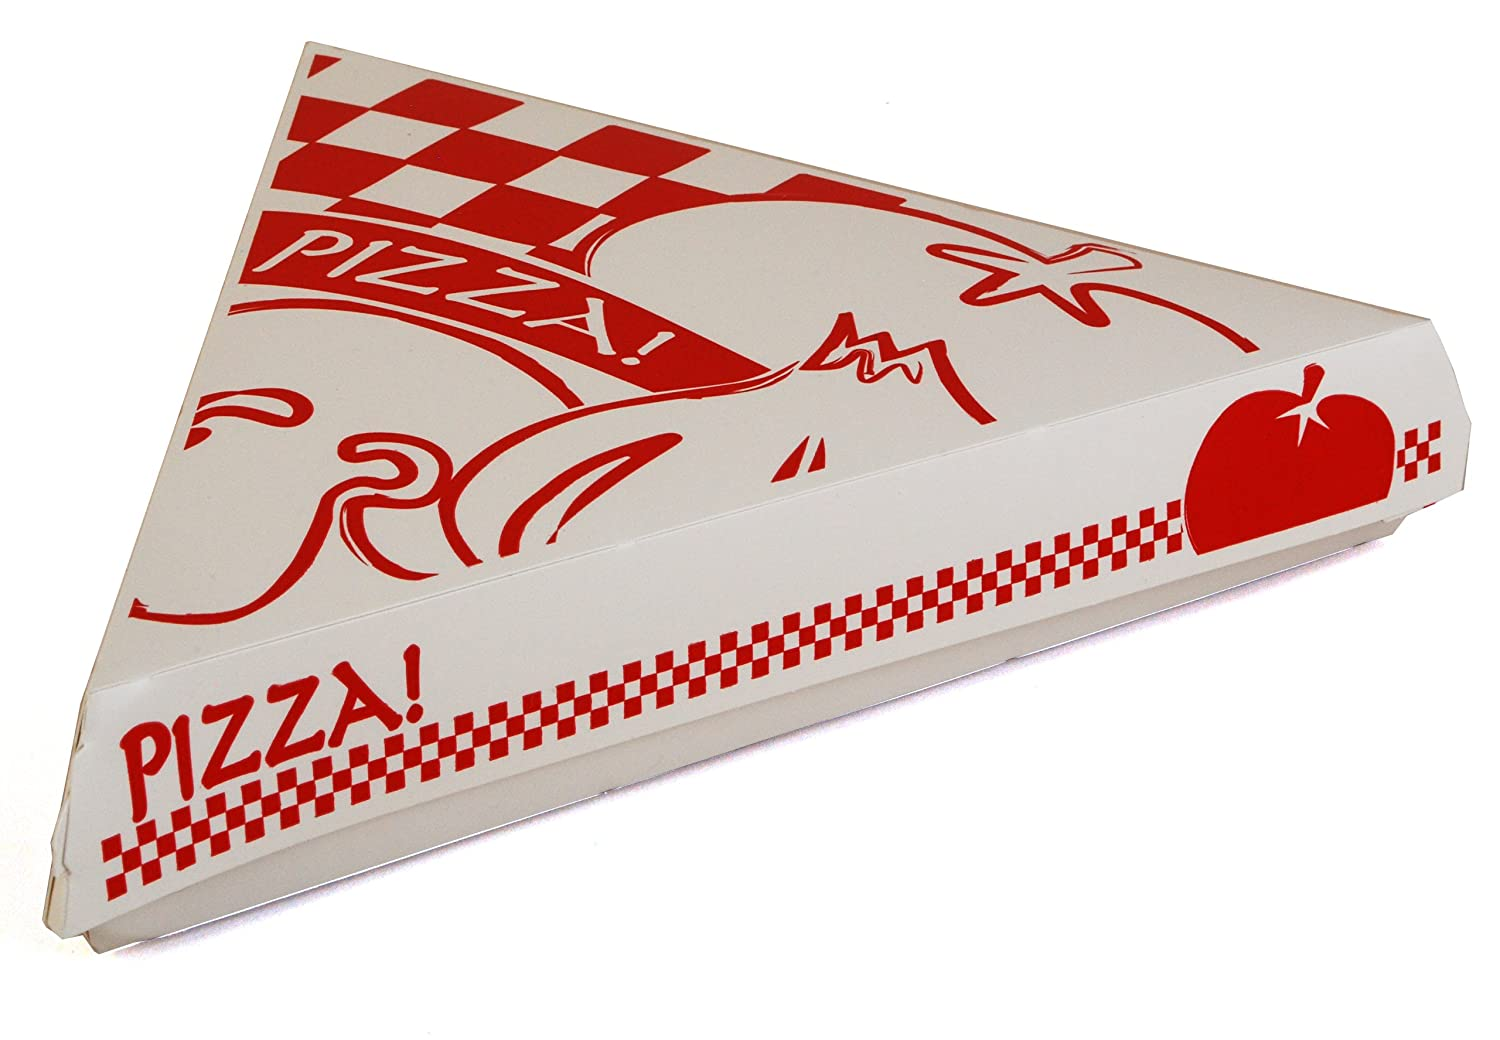 """Southern Champion Tray 07196 Paperboard White Pizza Slice Clamshell Food Container with """"Gourmet Pizza"""" Print, 9-1/4"""" Length x 9"""" Width x 1-11/16"""" Height (Case of 400)"""